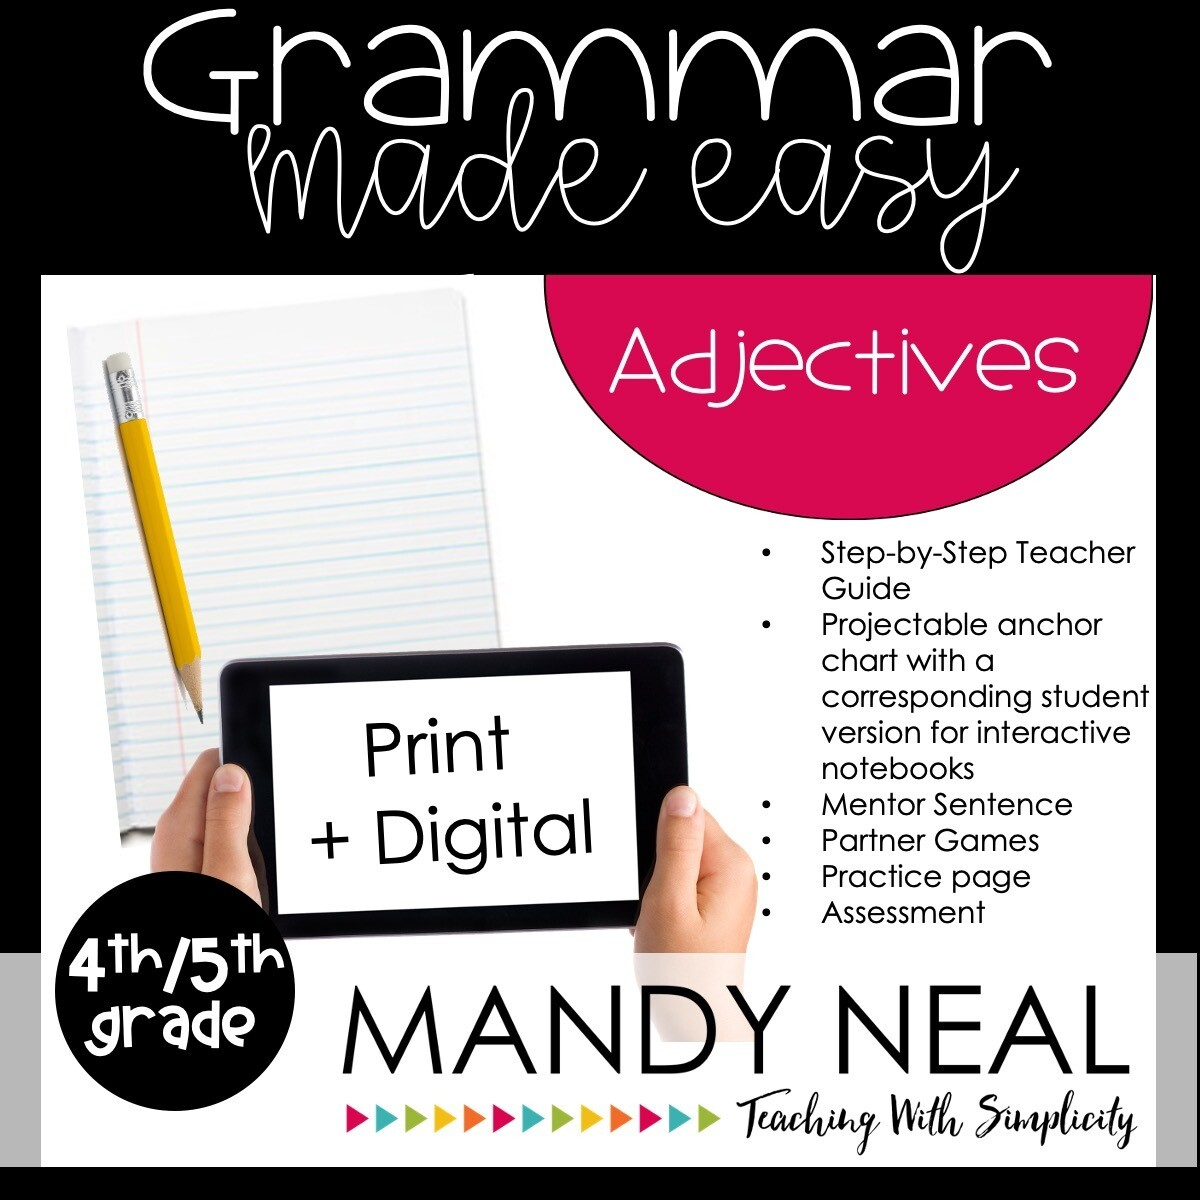 Print + Digital Fourth and Fifth Grade Grammar Activities (Adjectives)